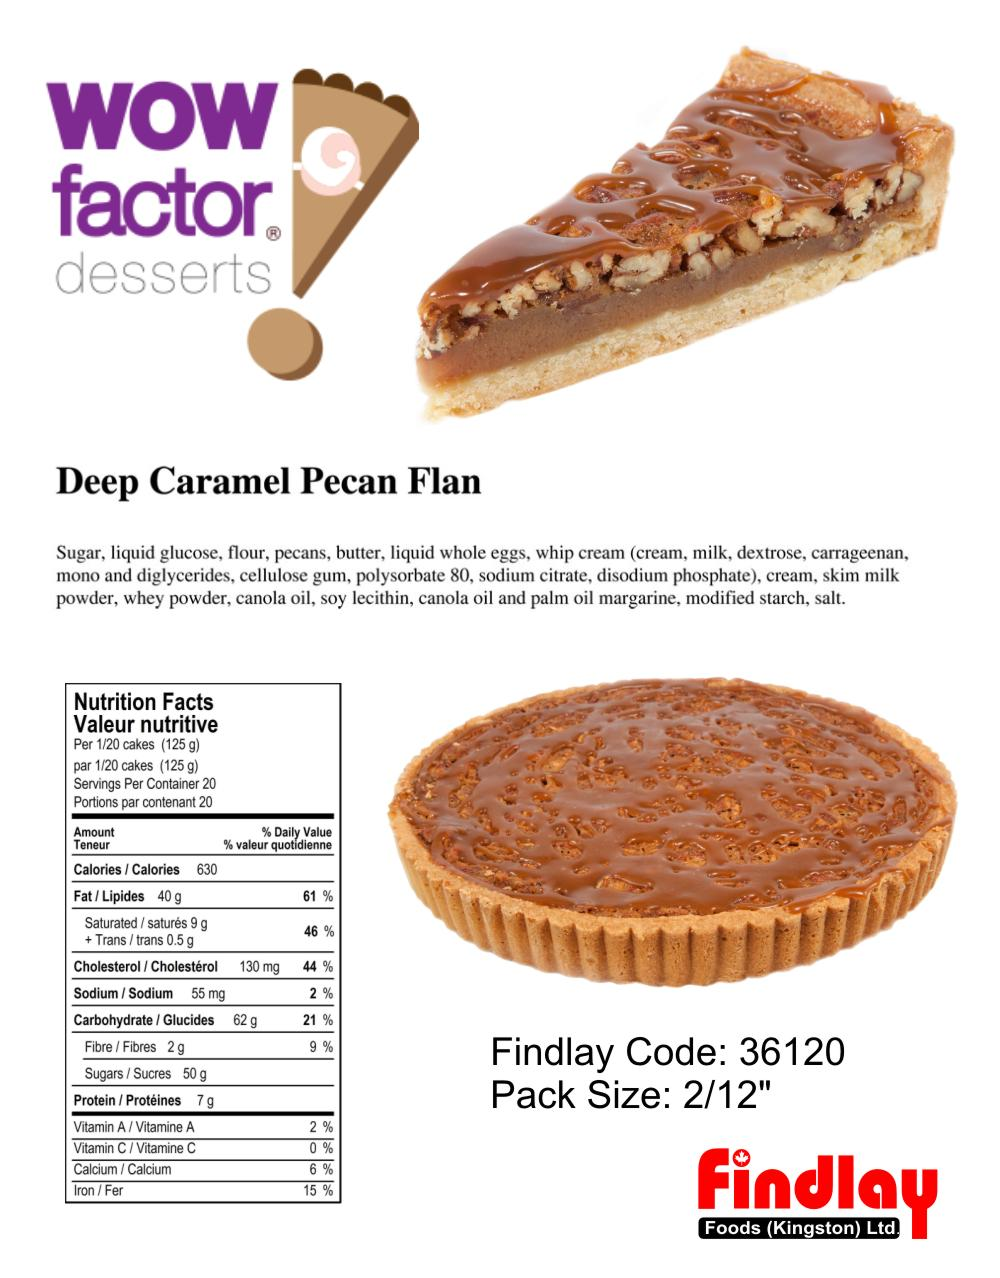 whats-new-wow-caramel-flan